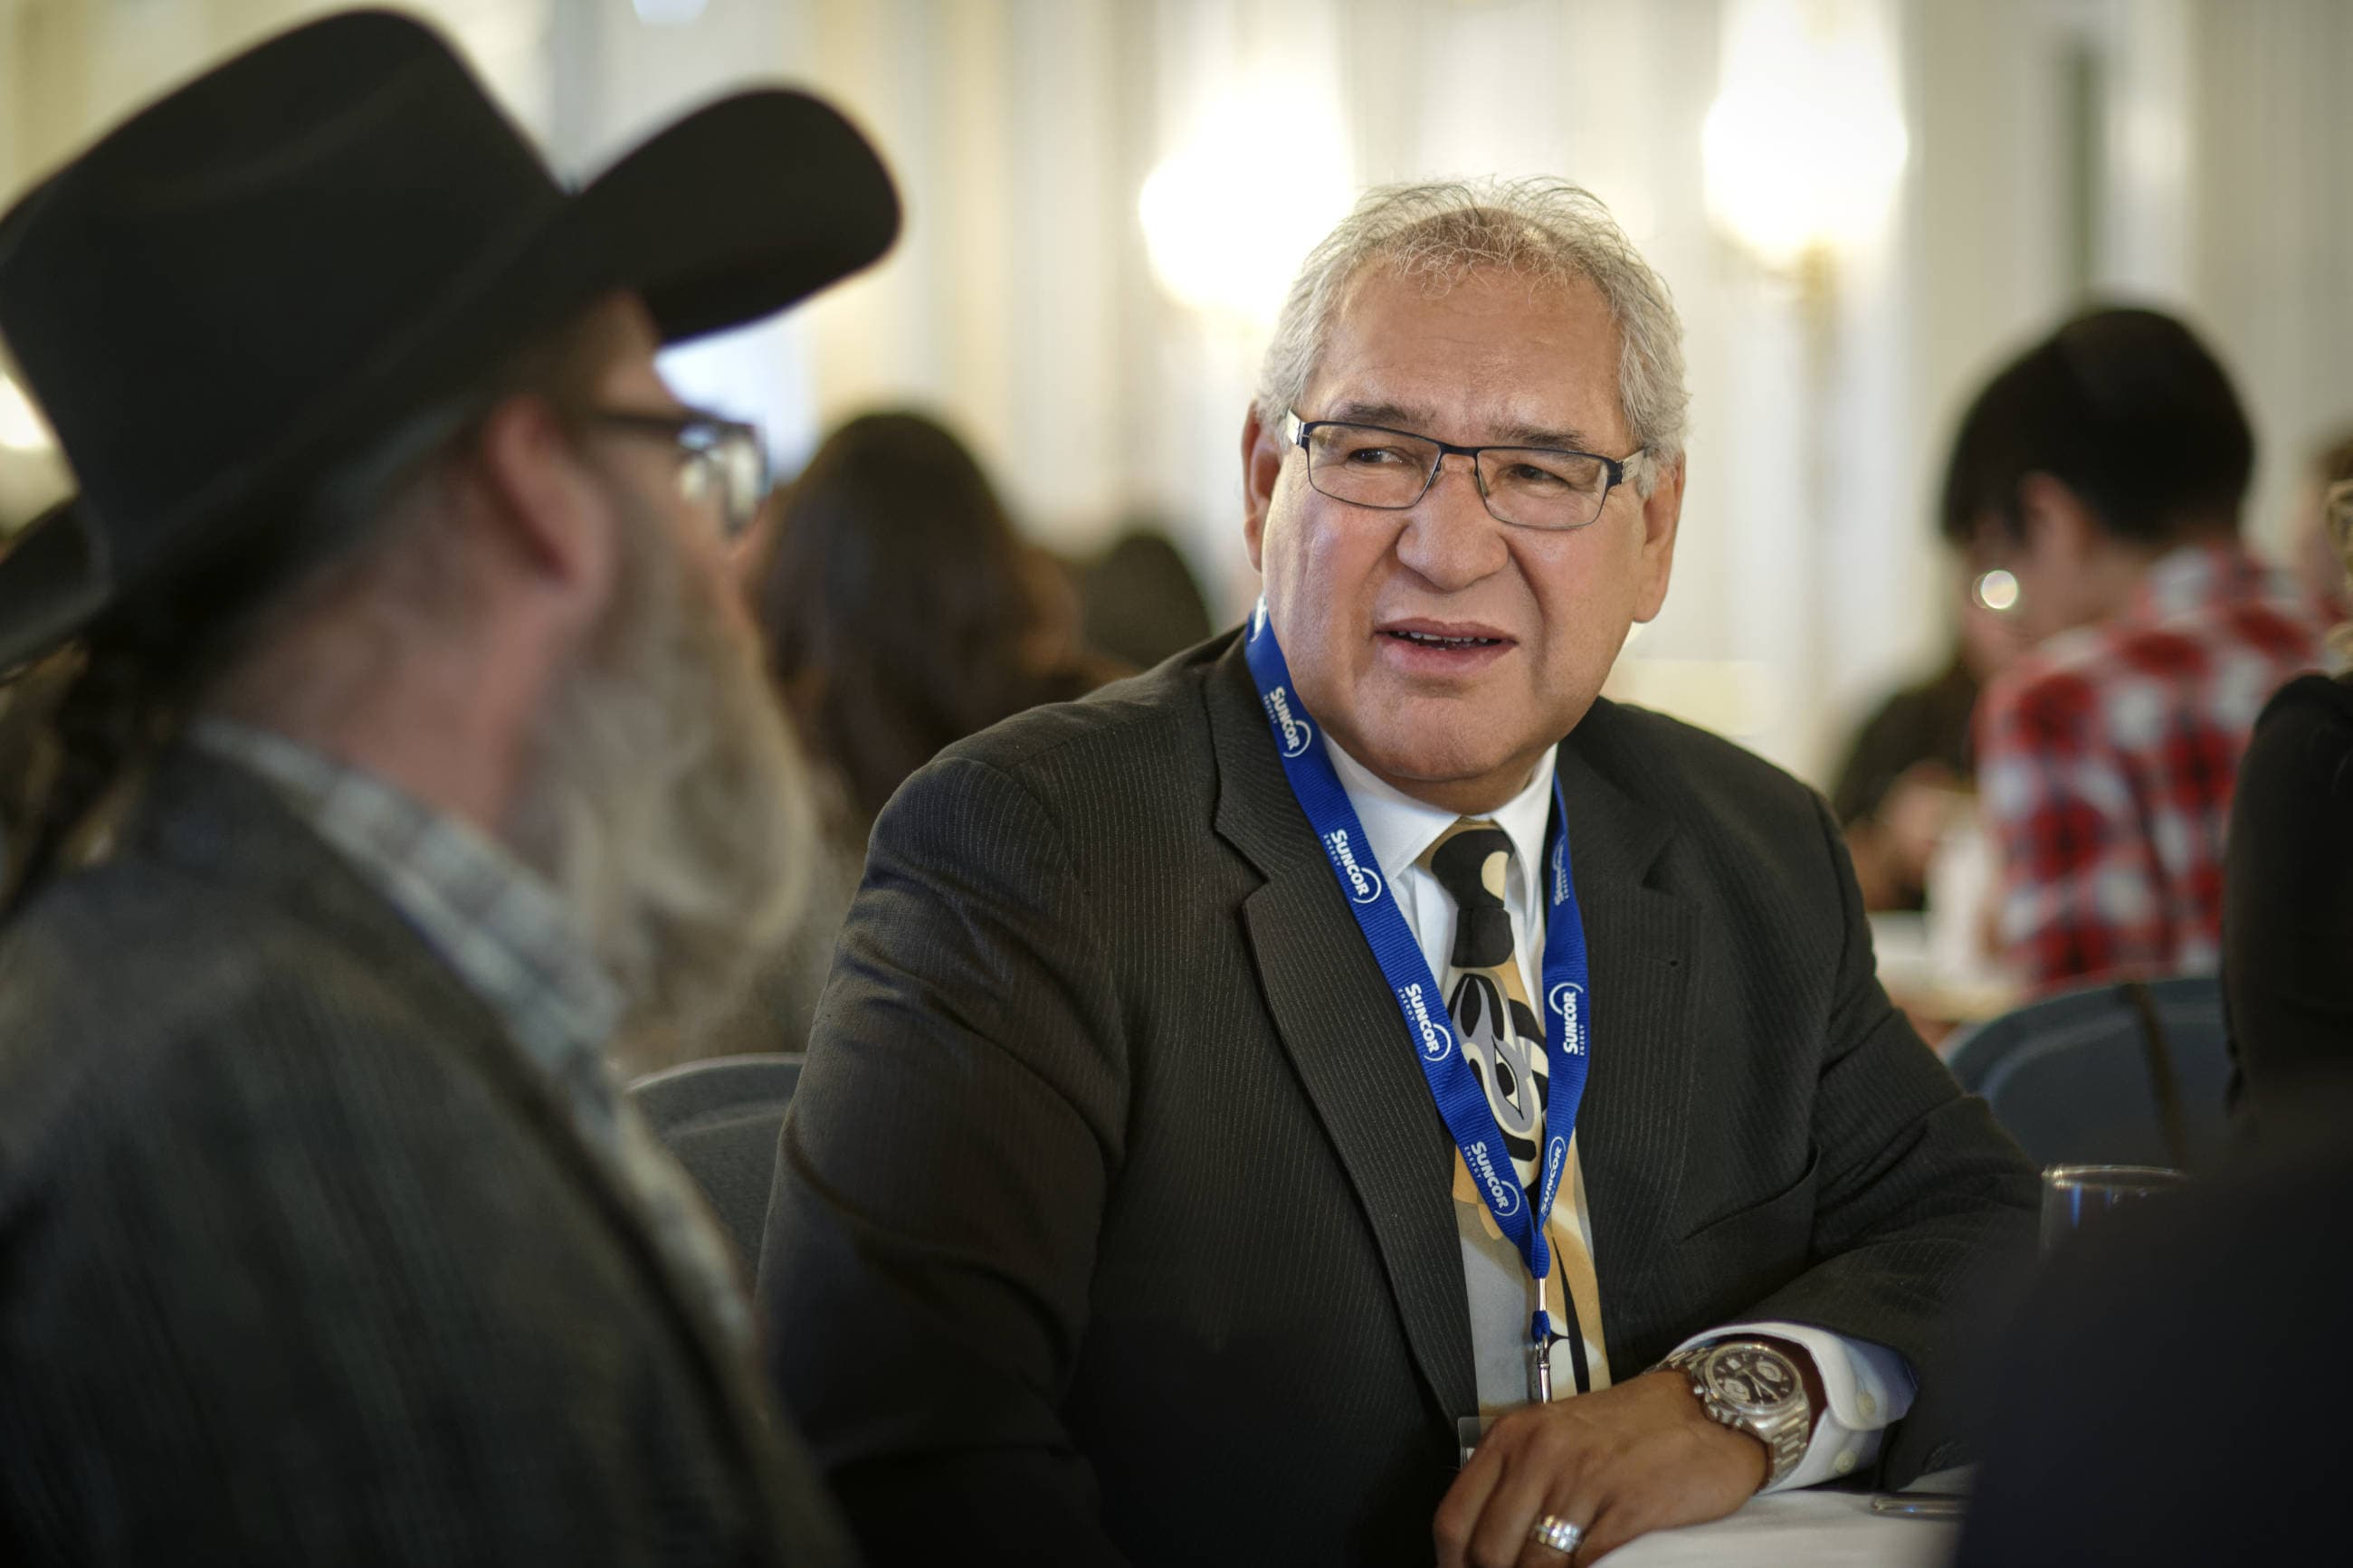 An attendee at the Indspire event in Calgary